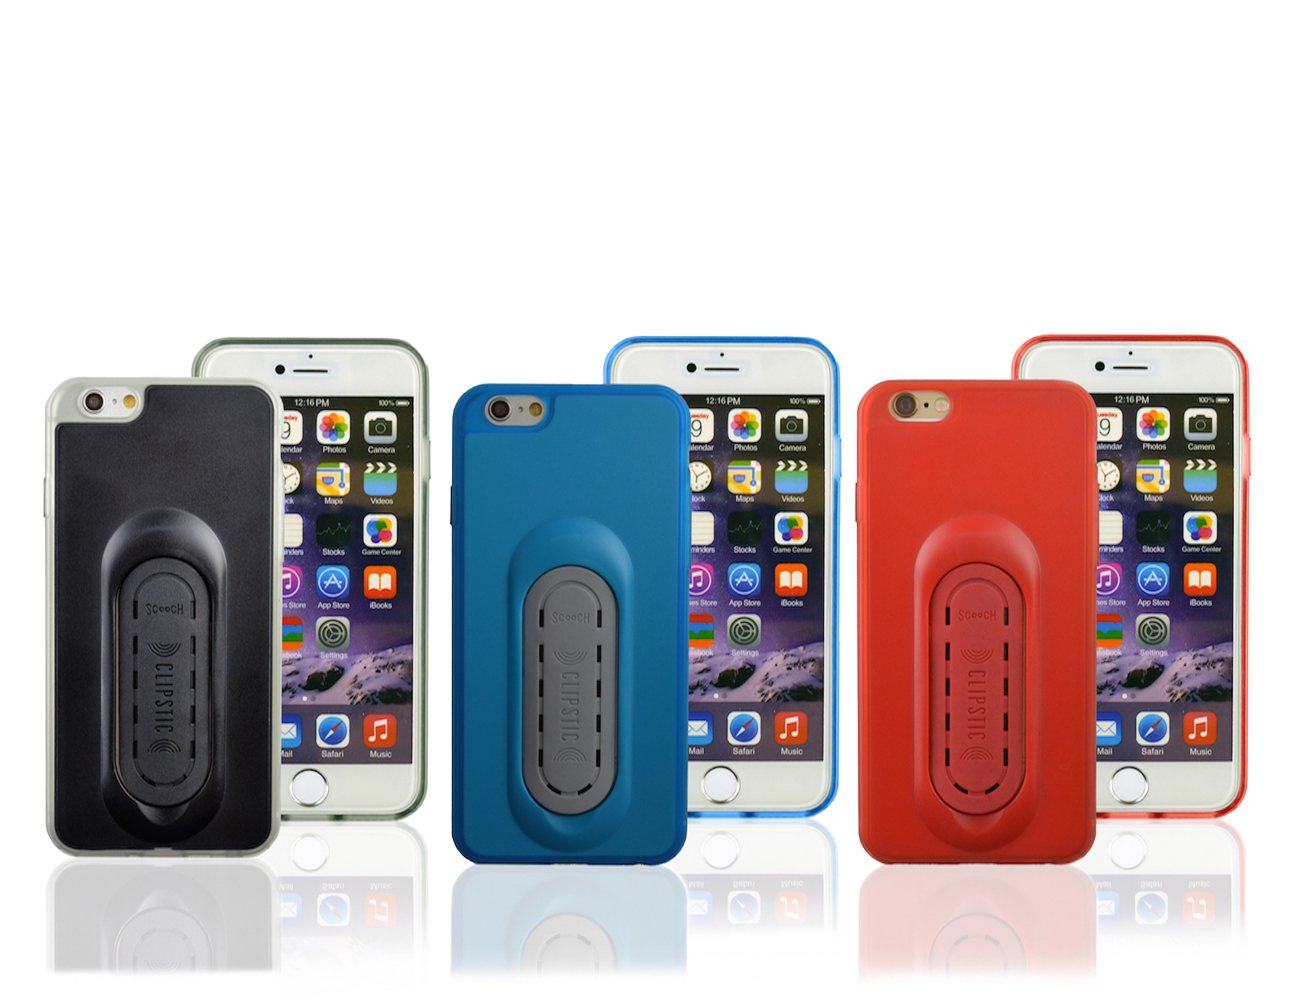 Clipstic 3-in-1 Mount Case for iPhone 6 by Scooch